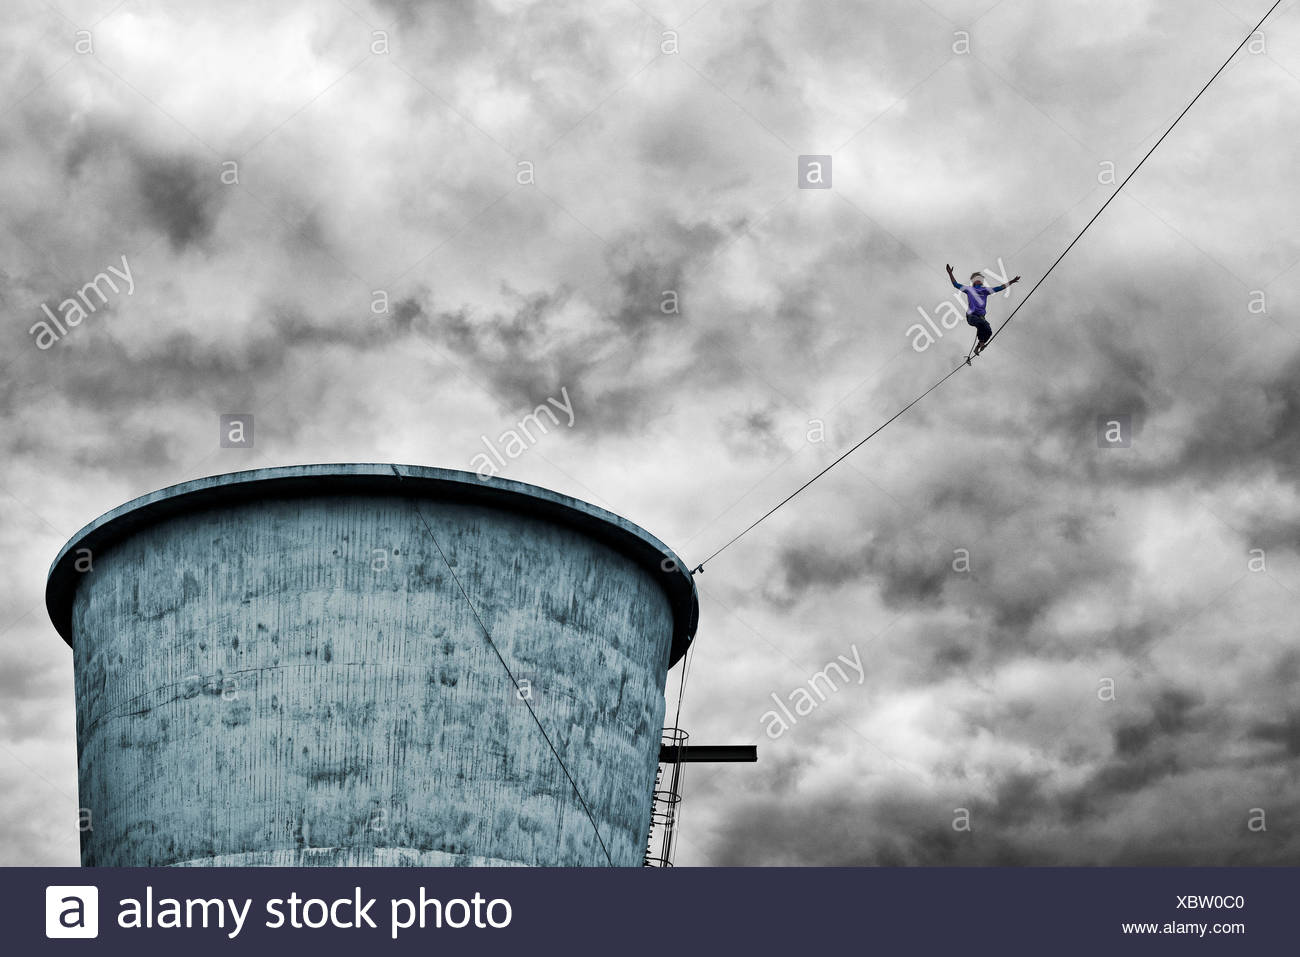 High rope artiste, extra layer in 2015, west park Bochum, North Rhine-Westphalia, Germany, Europe, dysentery area - Stock Image